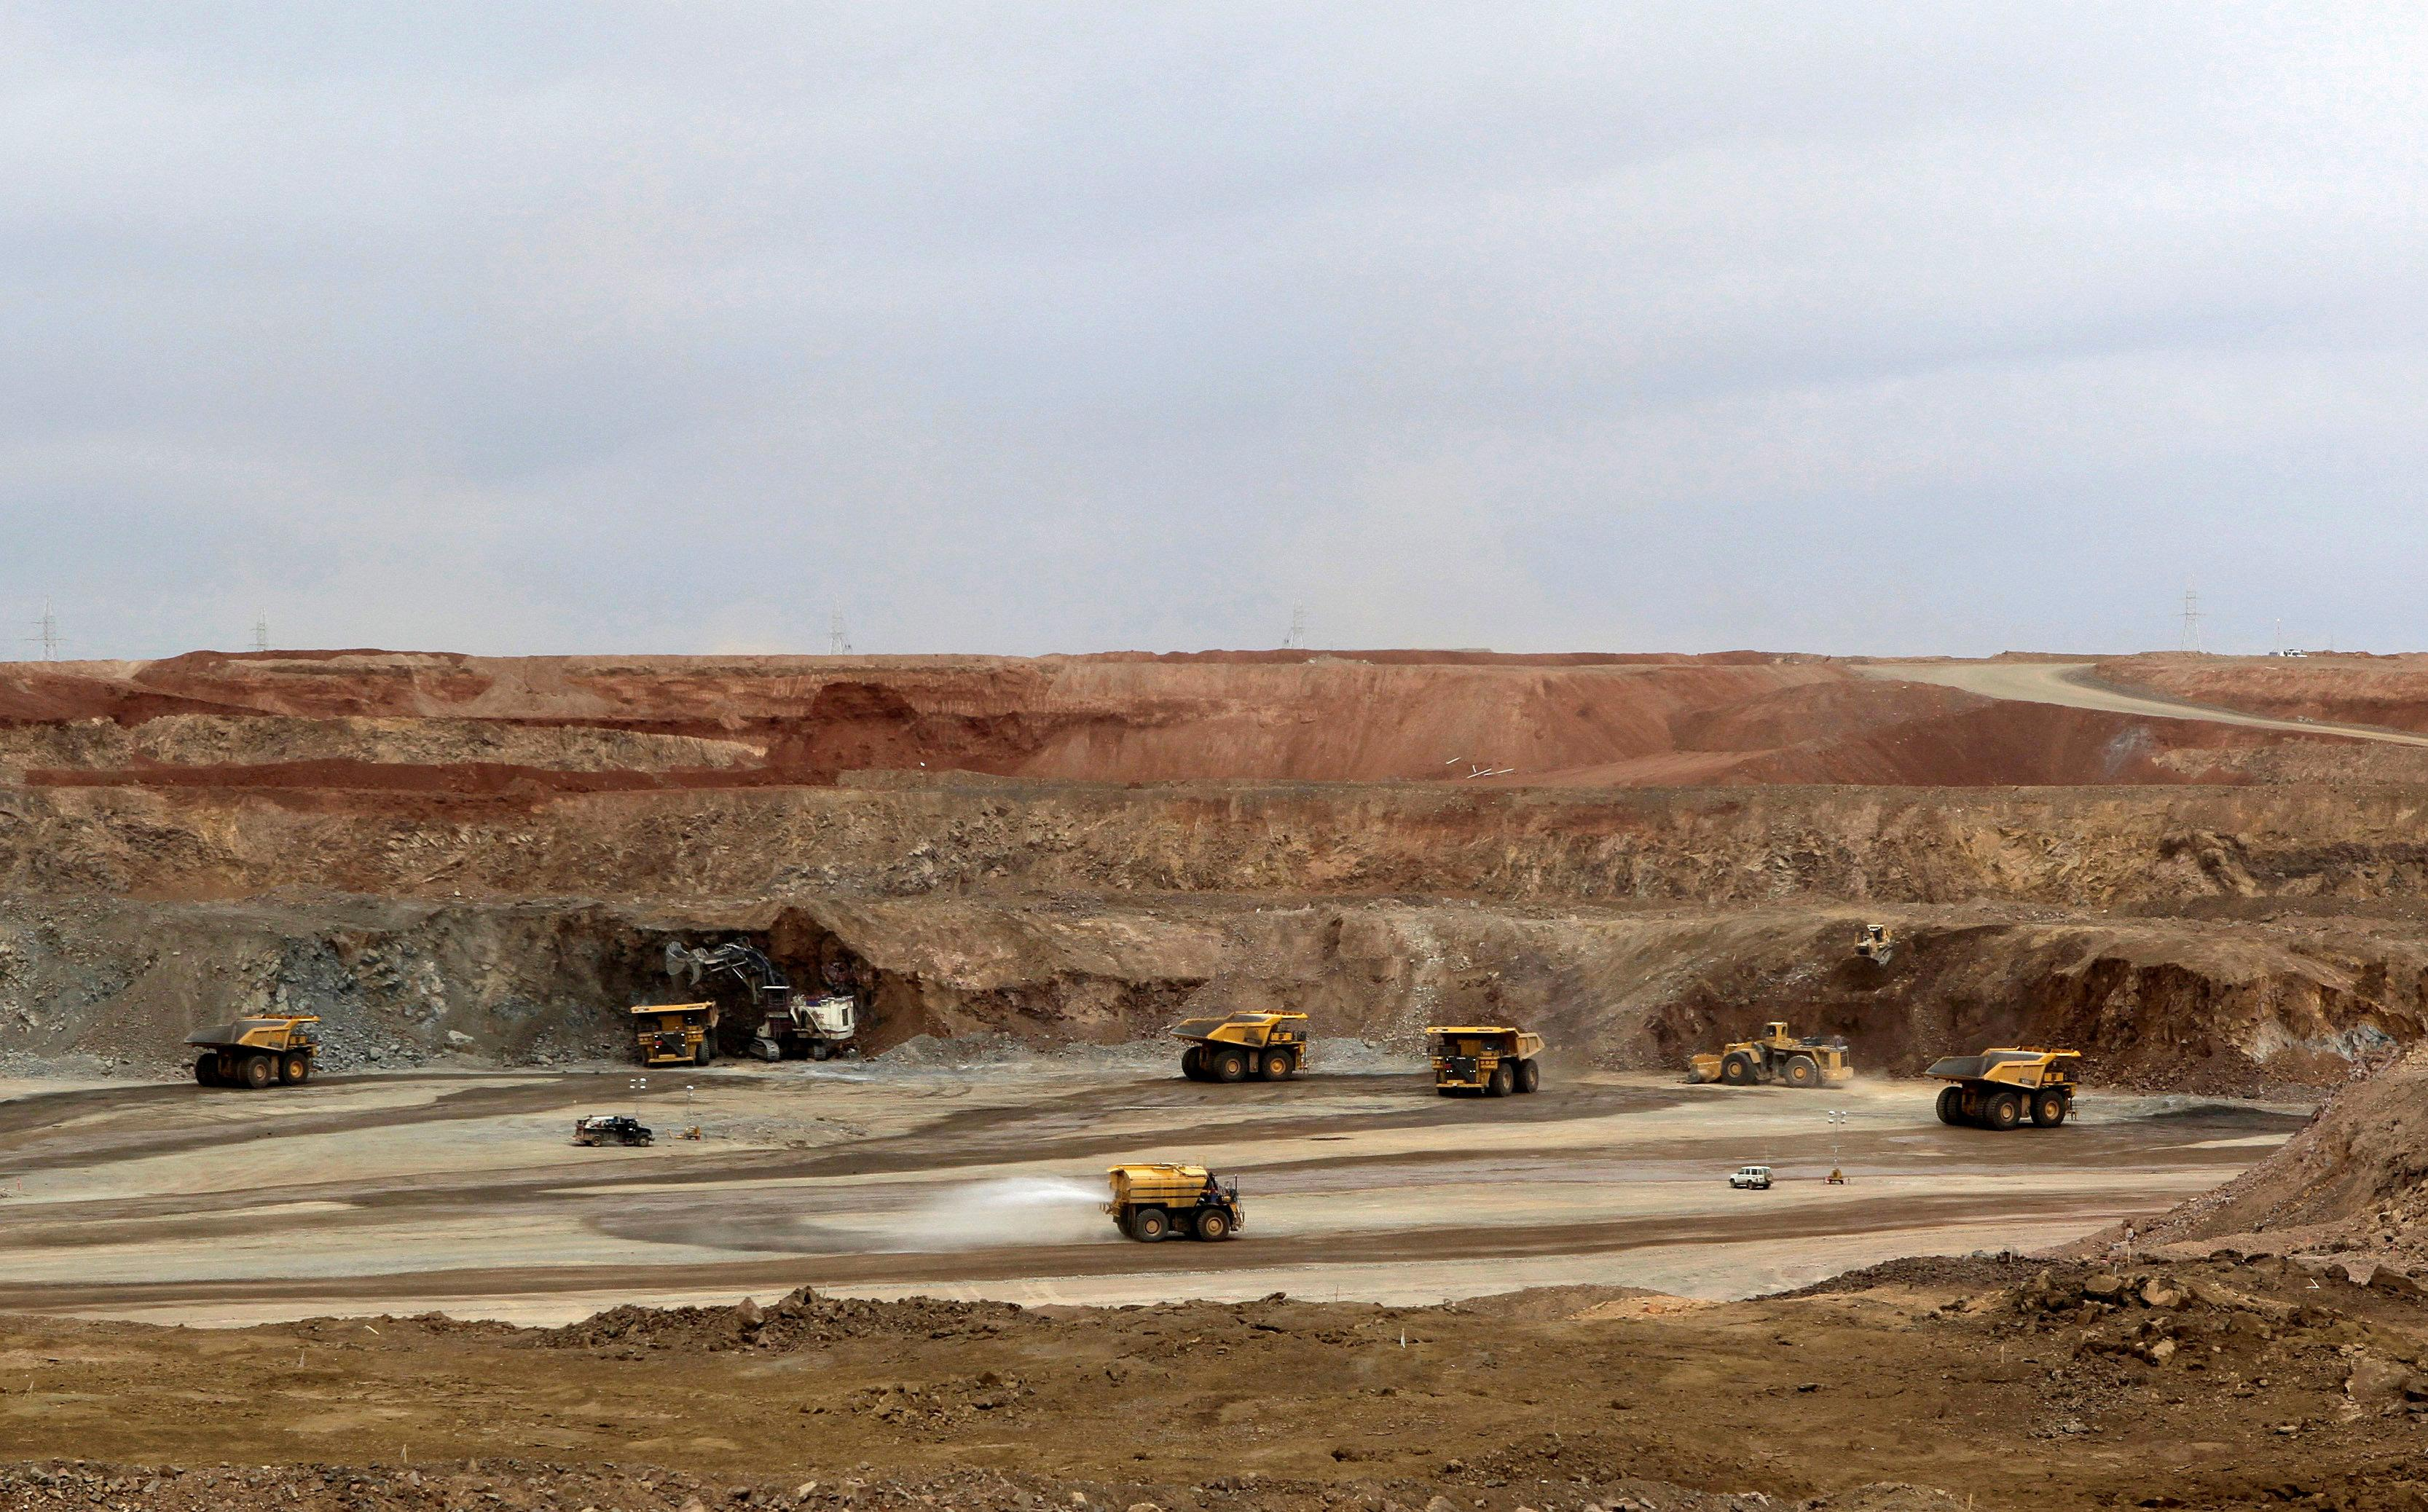 Mining trucks are seen at the Oyu Tolgoi mine in Mongolia's South Gobi region June 23, 2012. David Stanway